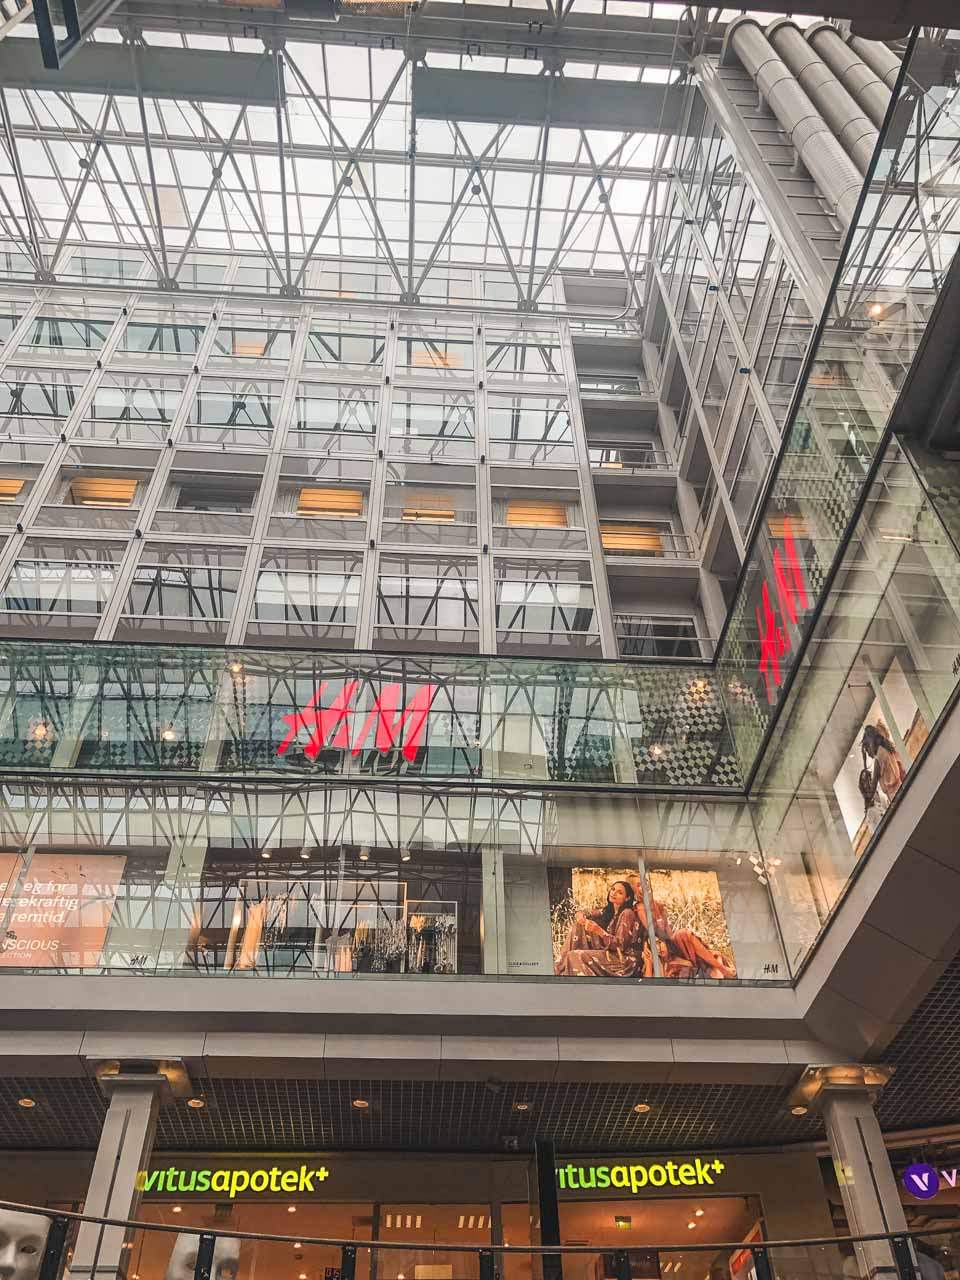 The inside of Oslo City shopping centre in Oslo, Norway